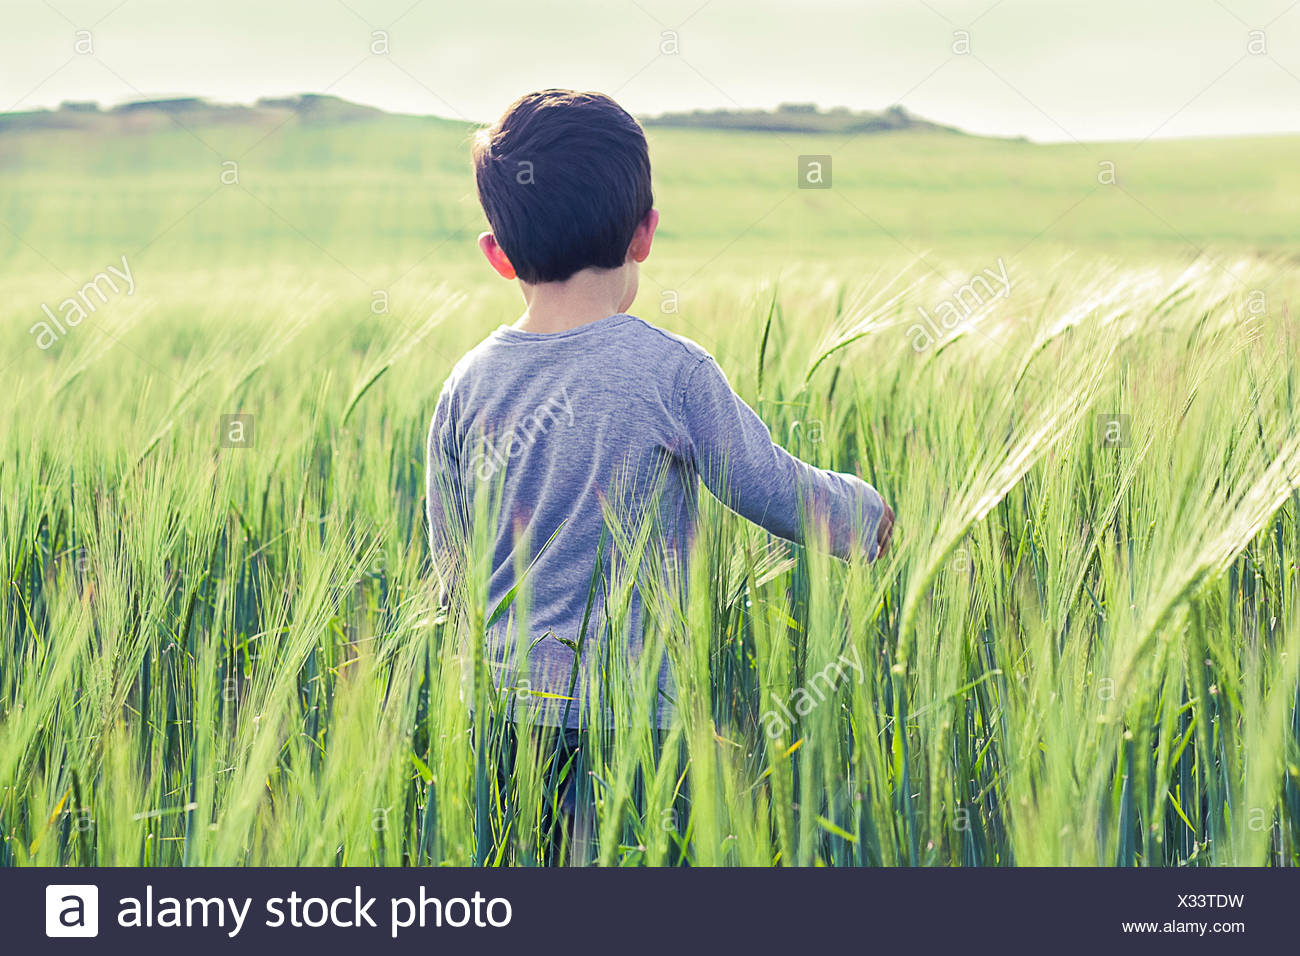 Boy (18-23 months) standing in field - Stock Image